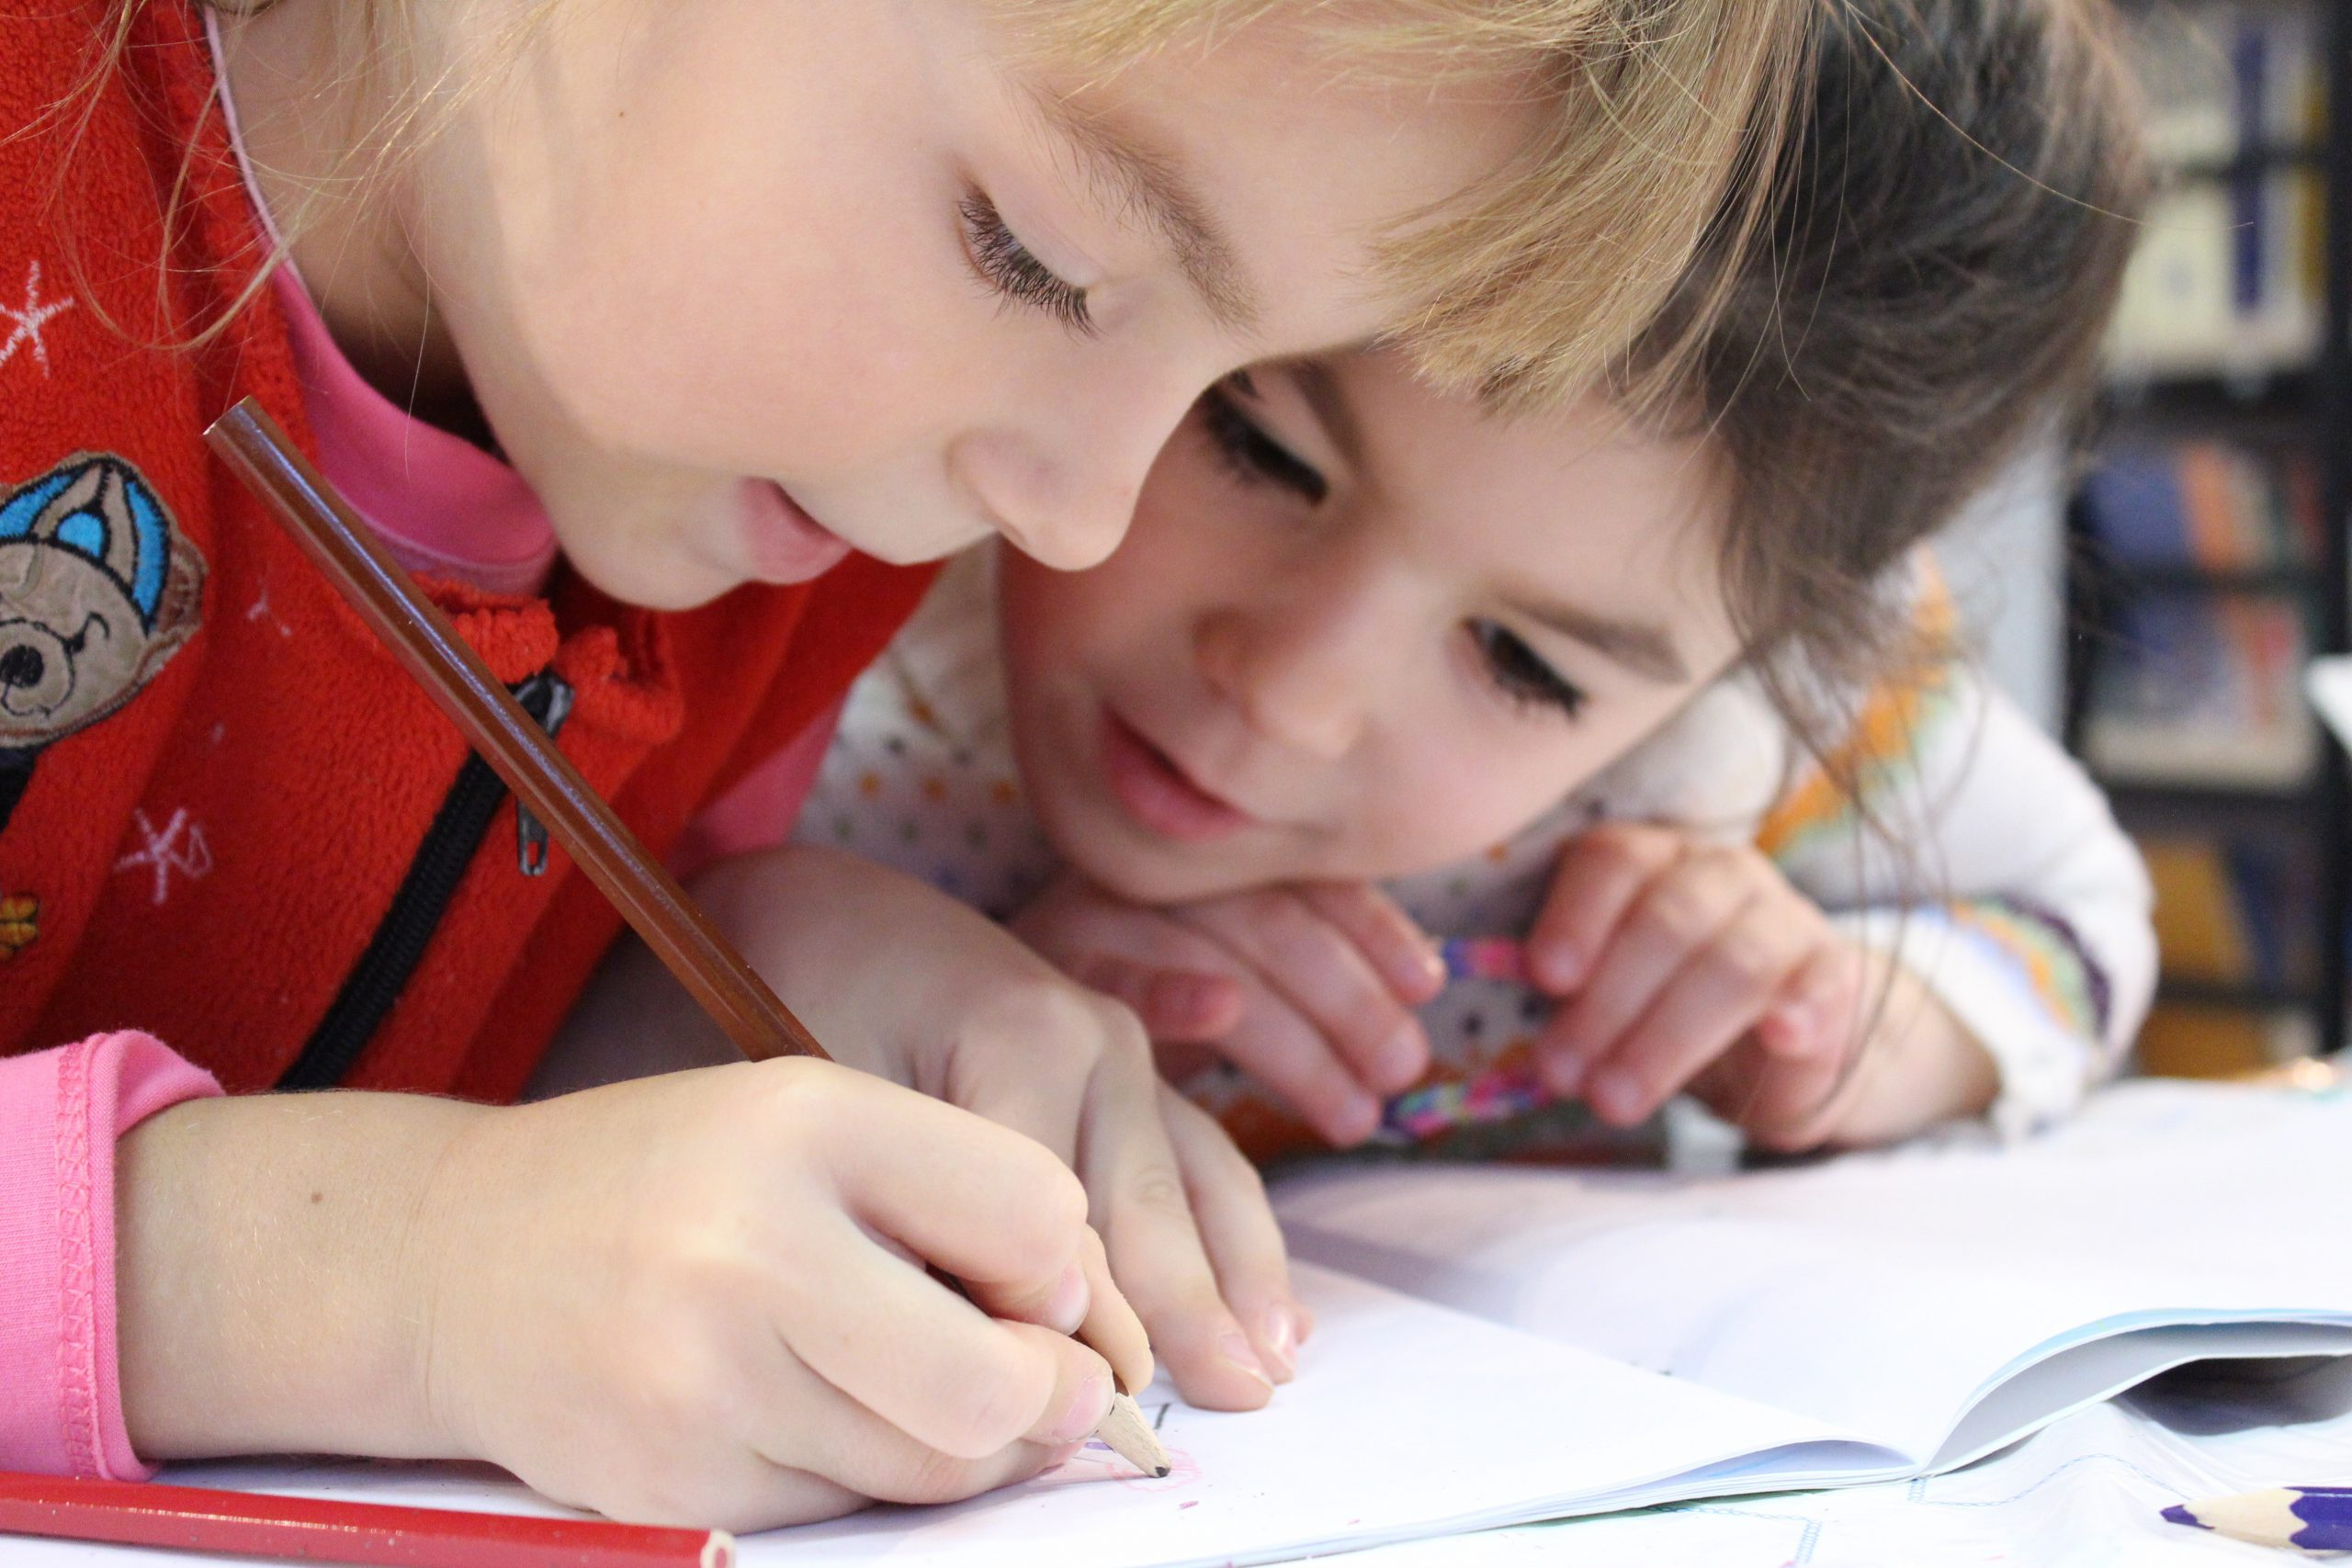 Two young children coloring together